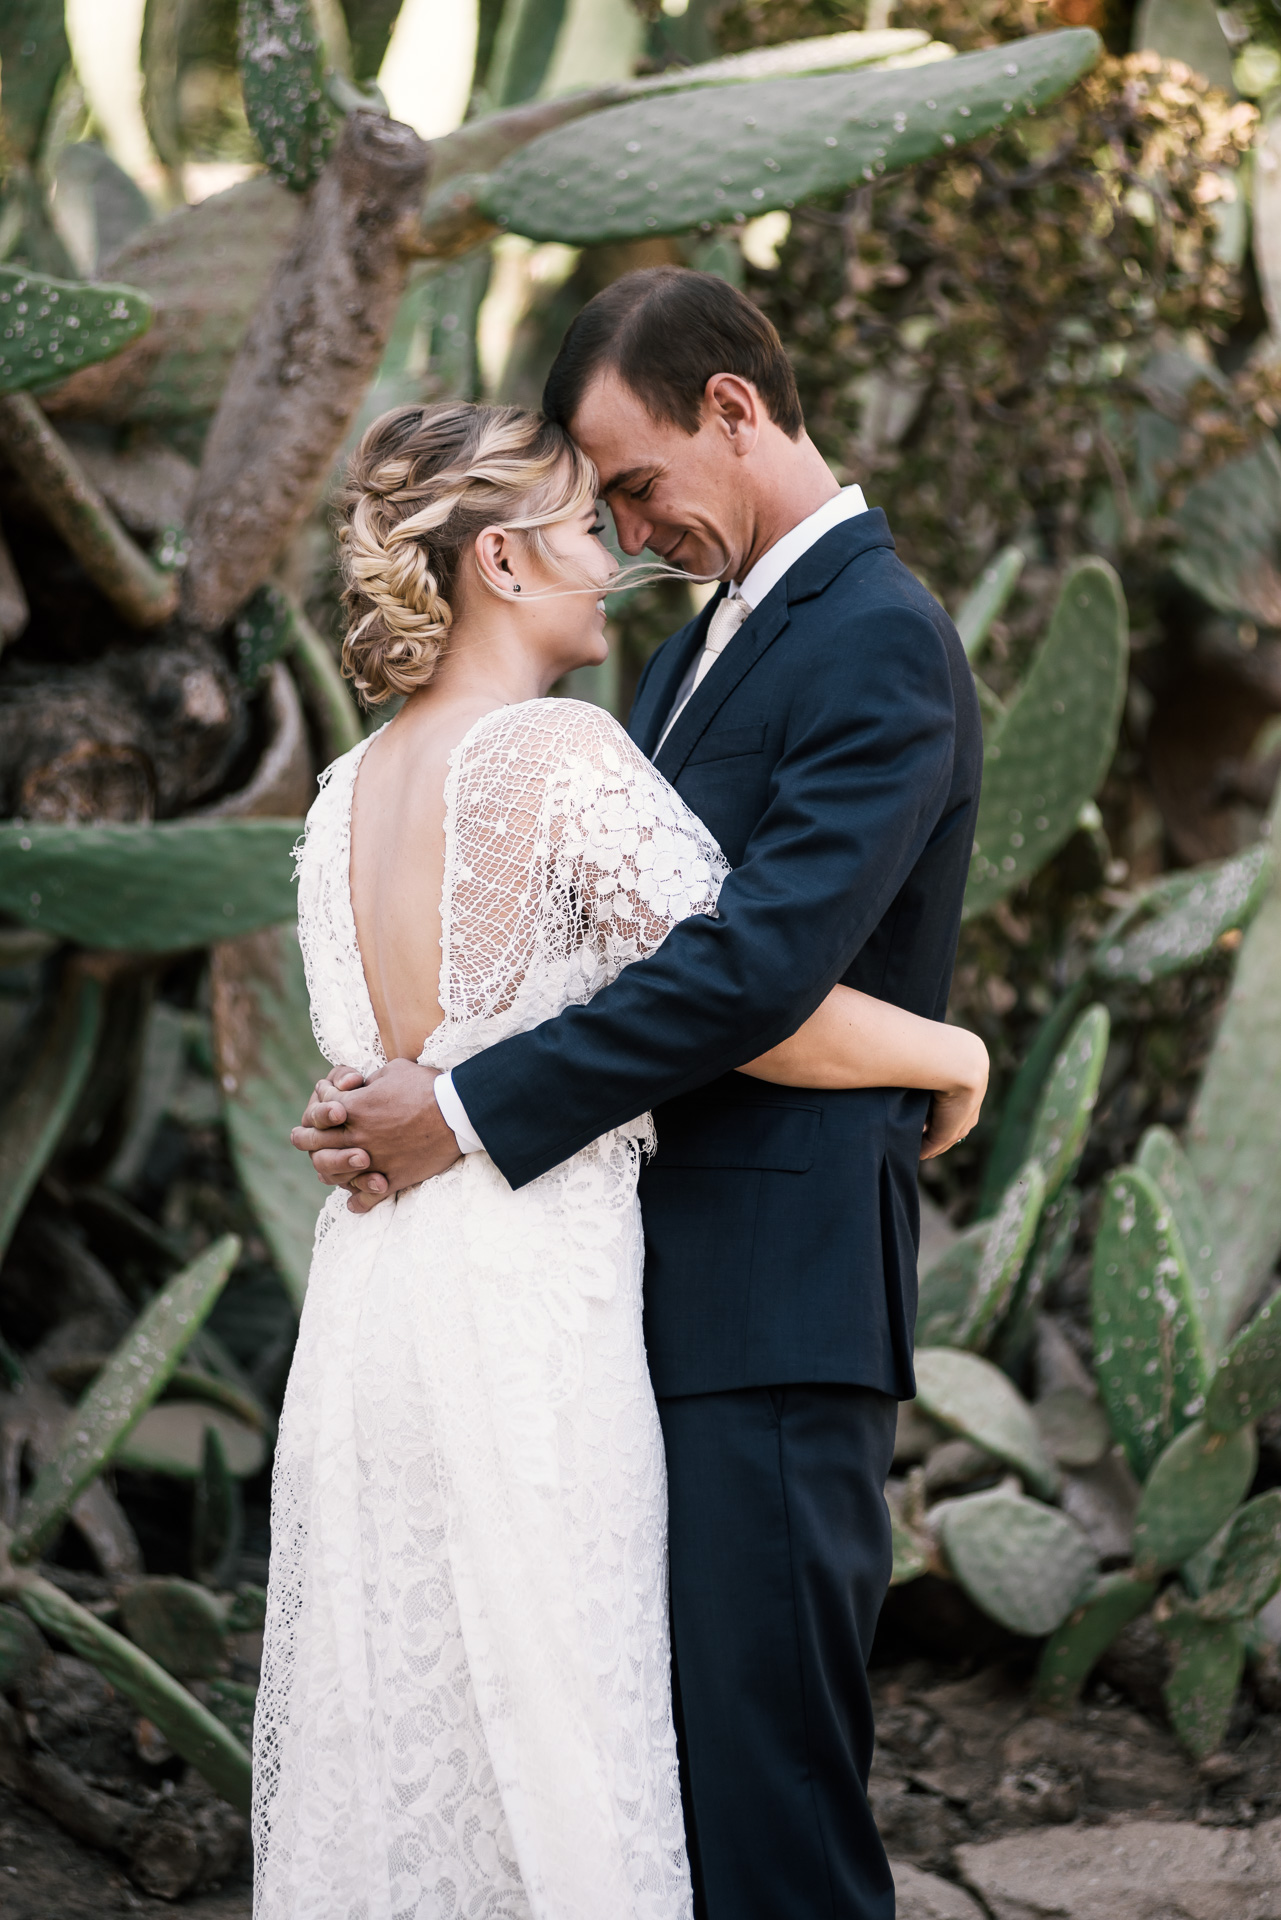 Tender moment between bride and groom as they get close captured by photographer during romantic wedding at the historic Leo Carrillo Ranch in Carlsbad California